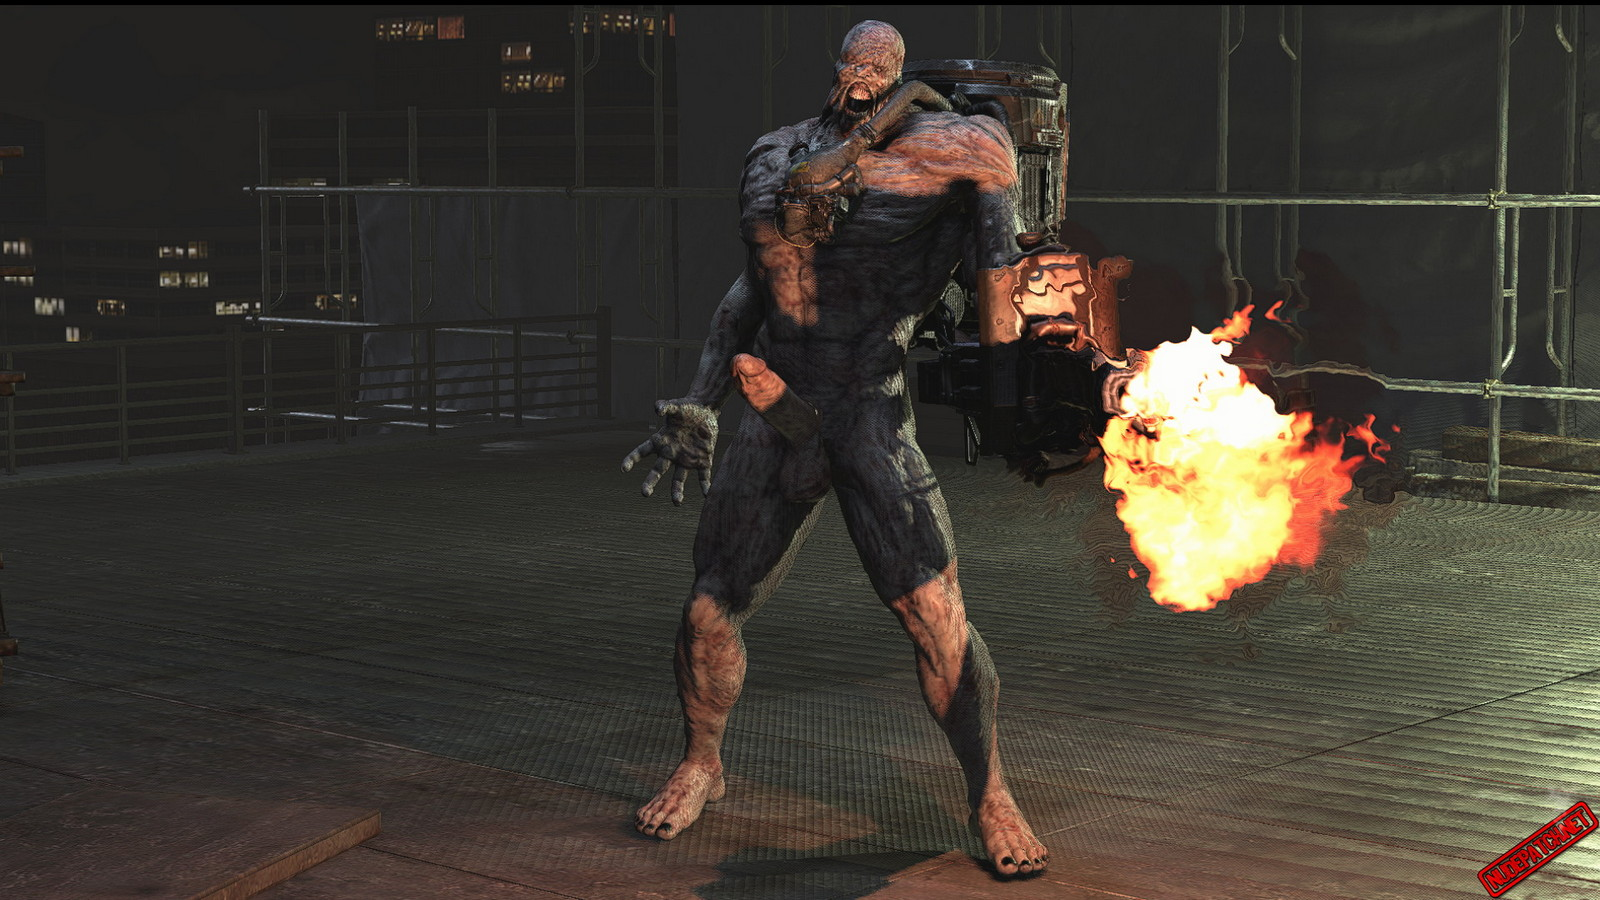 Resident Evil mods put Leon, Carlos and Nemesis in front nude